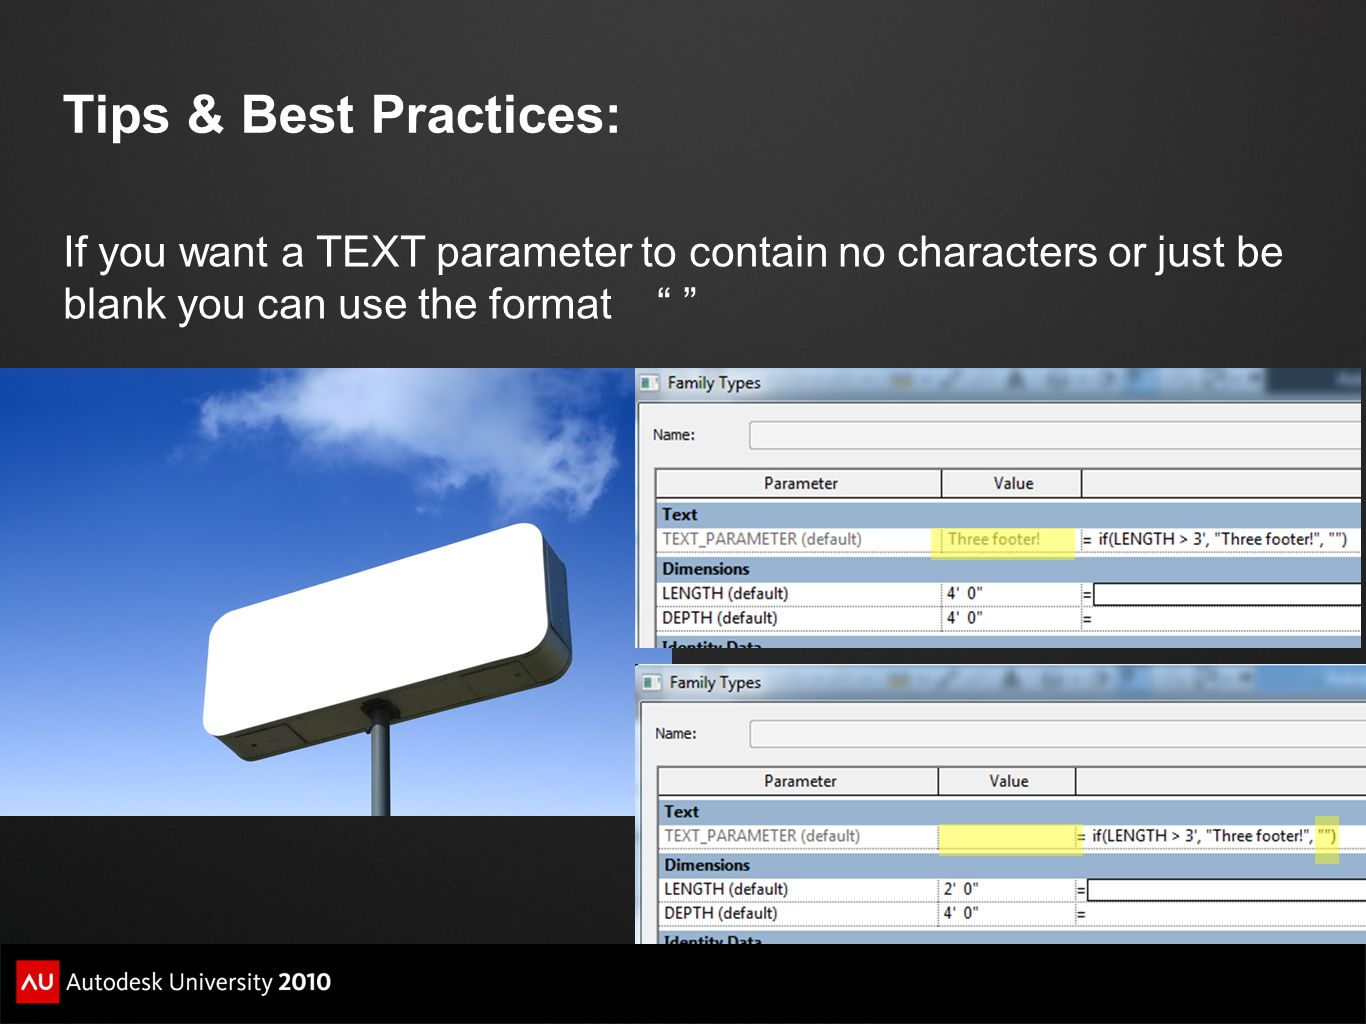 Tips & Best Practices: If you want a TEXT parameter to contain no characters or just be blank you can use the format